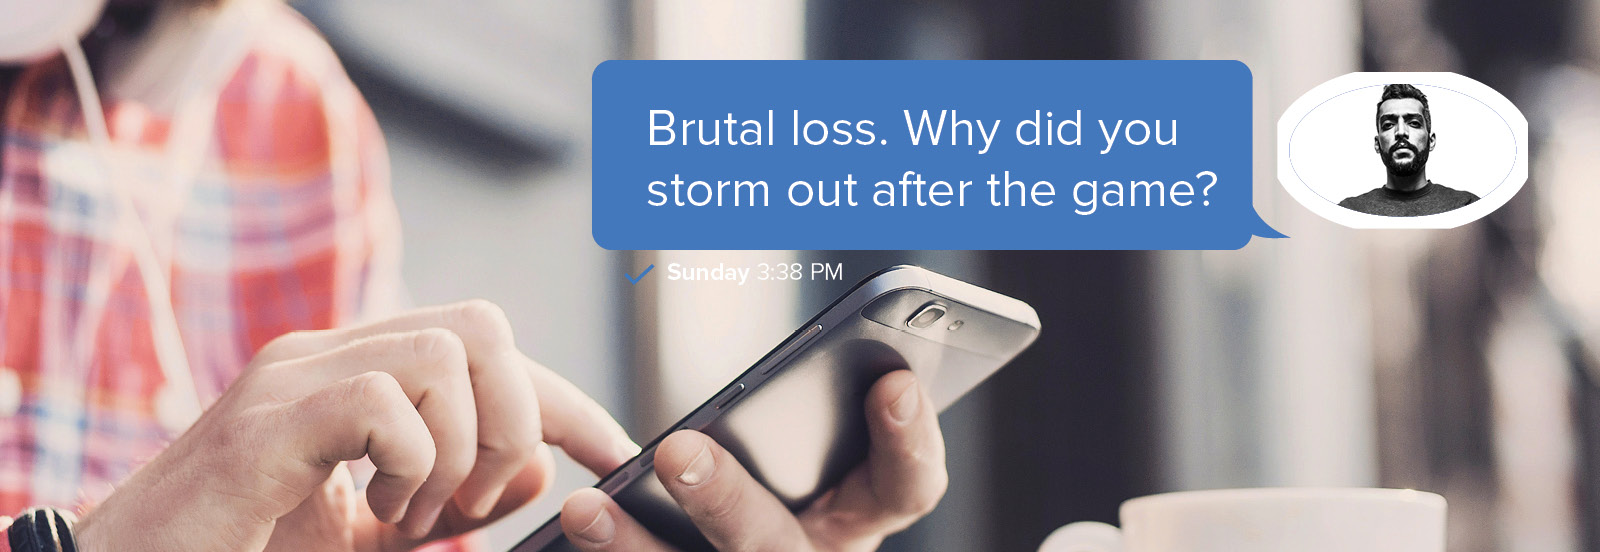 "text message visual ""Brutal loss. Why did you storm out after the game?"""